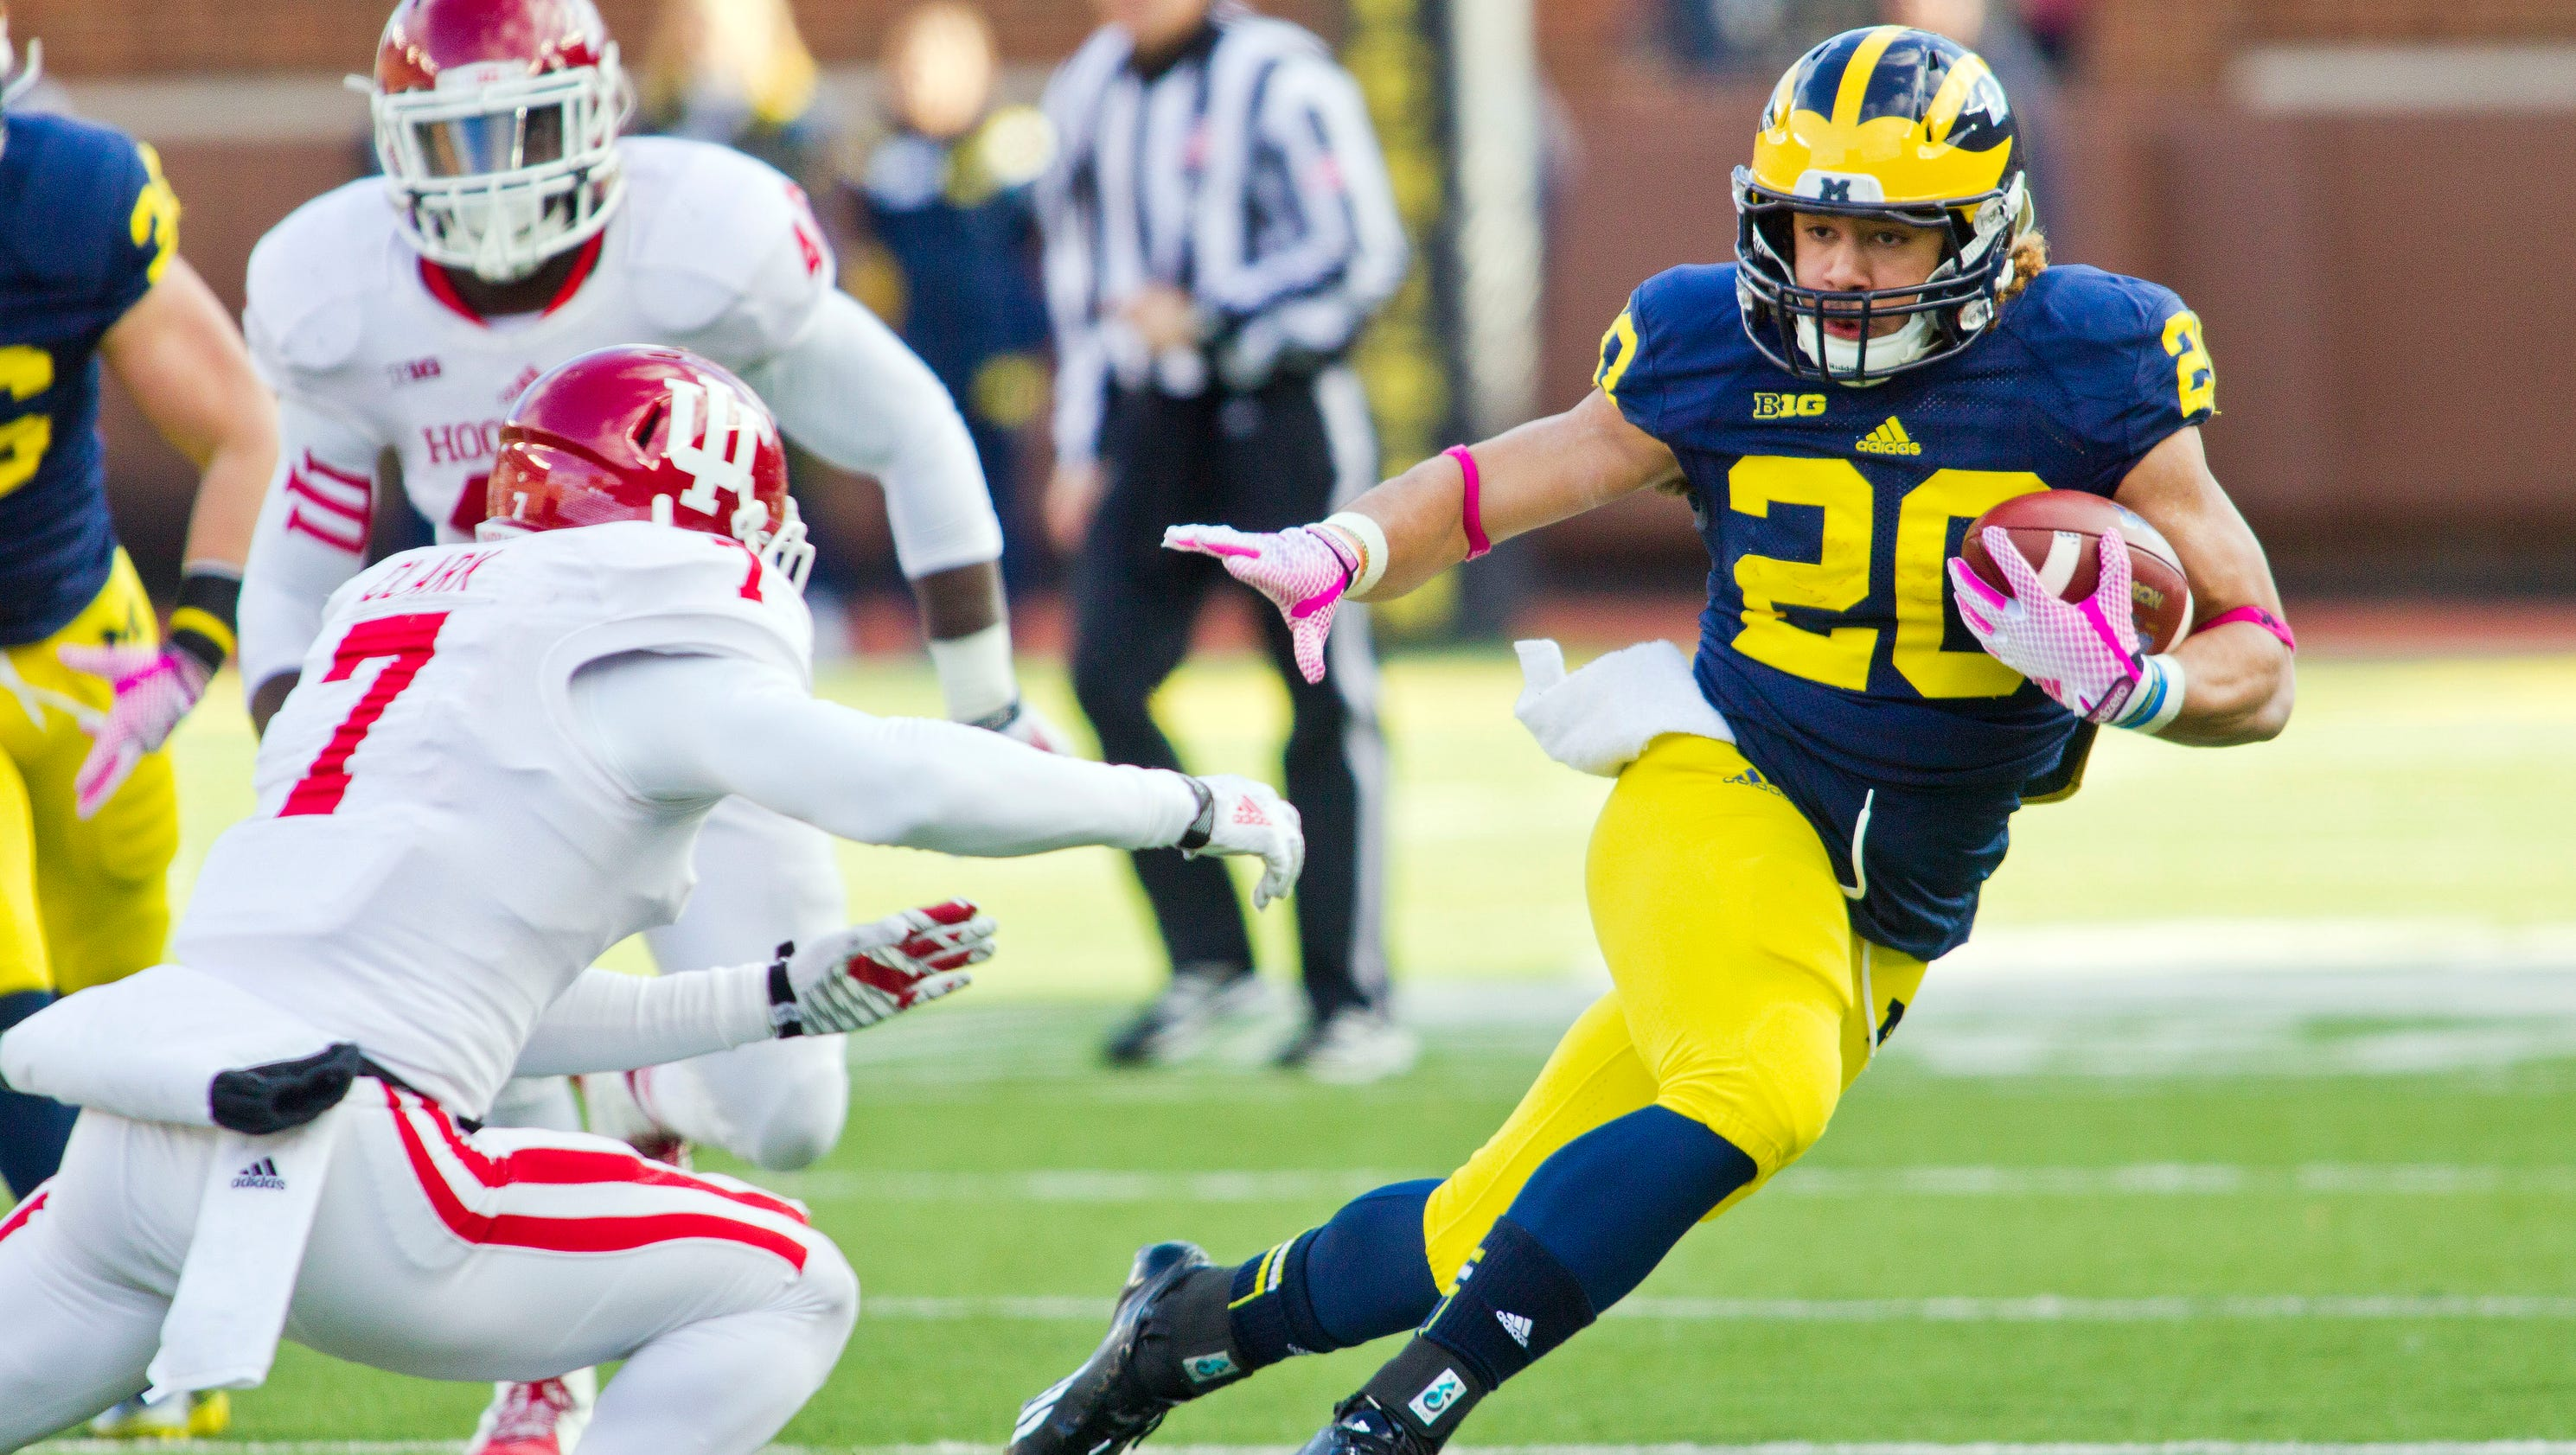 mike hart was template for michigan rb drake johnson